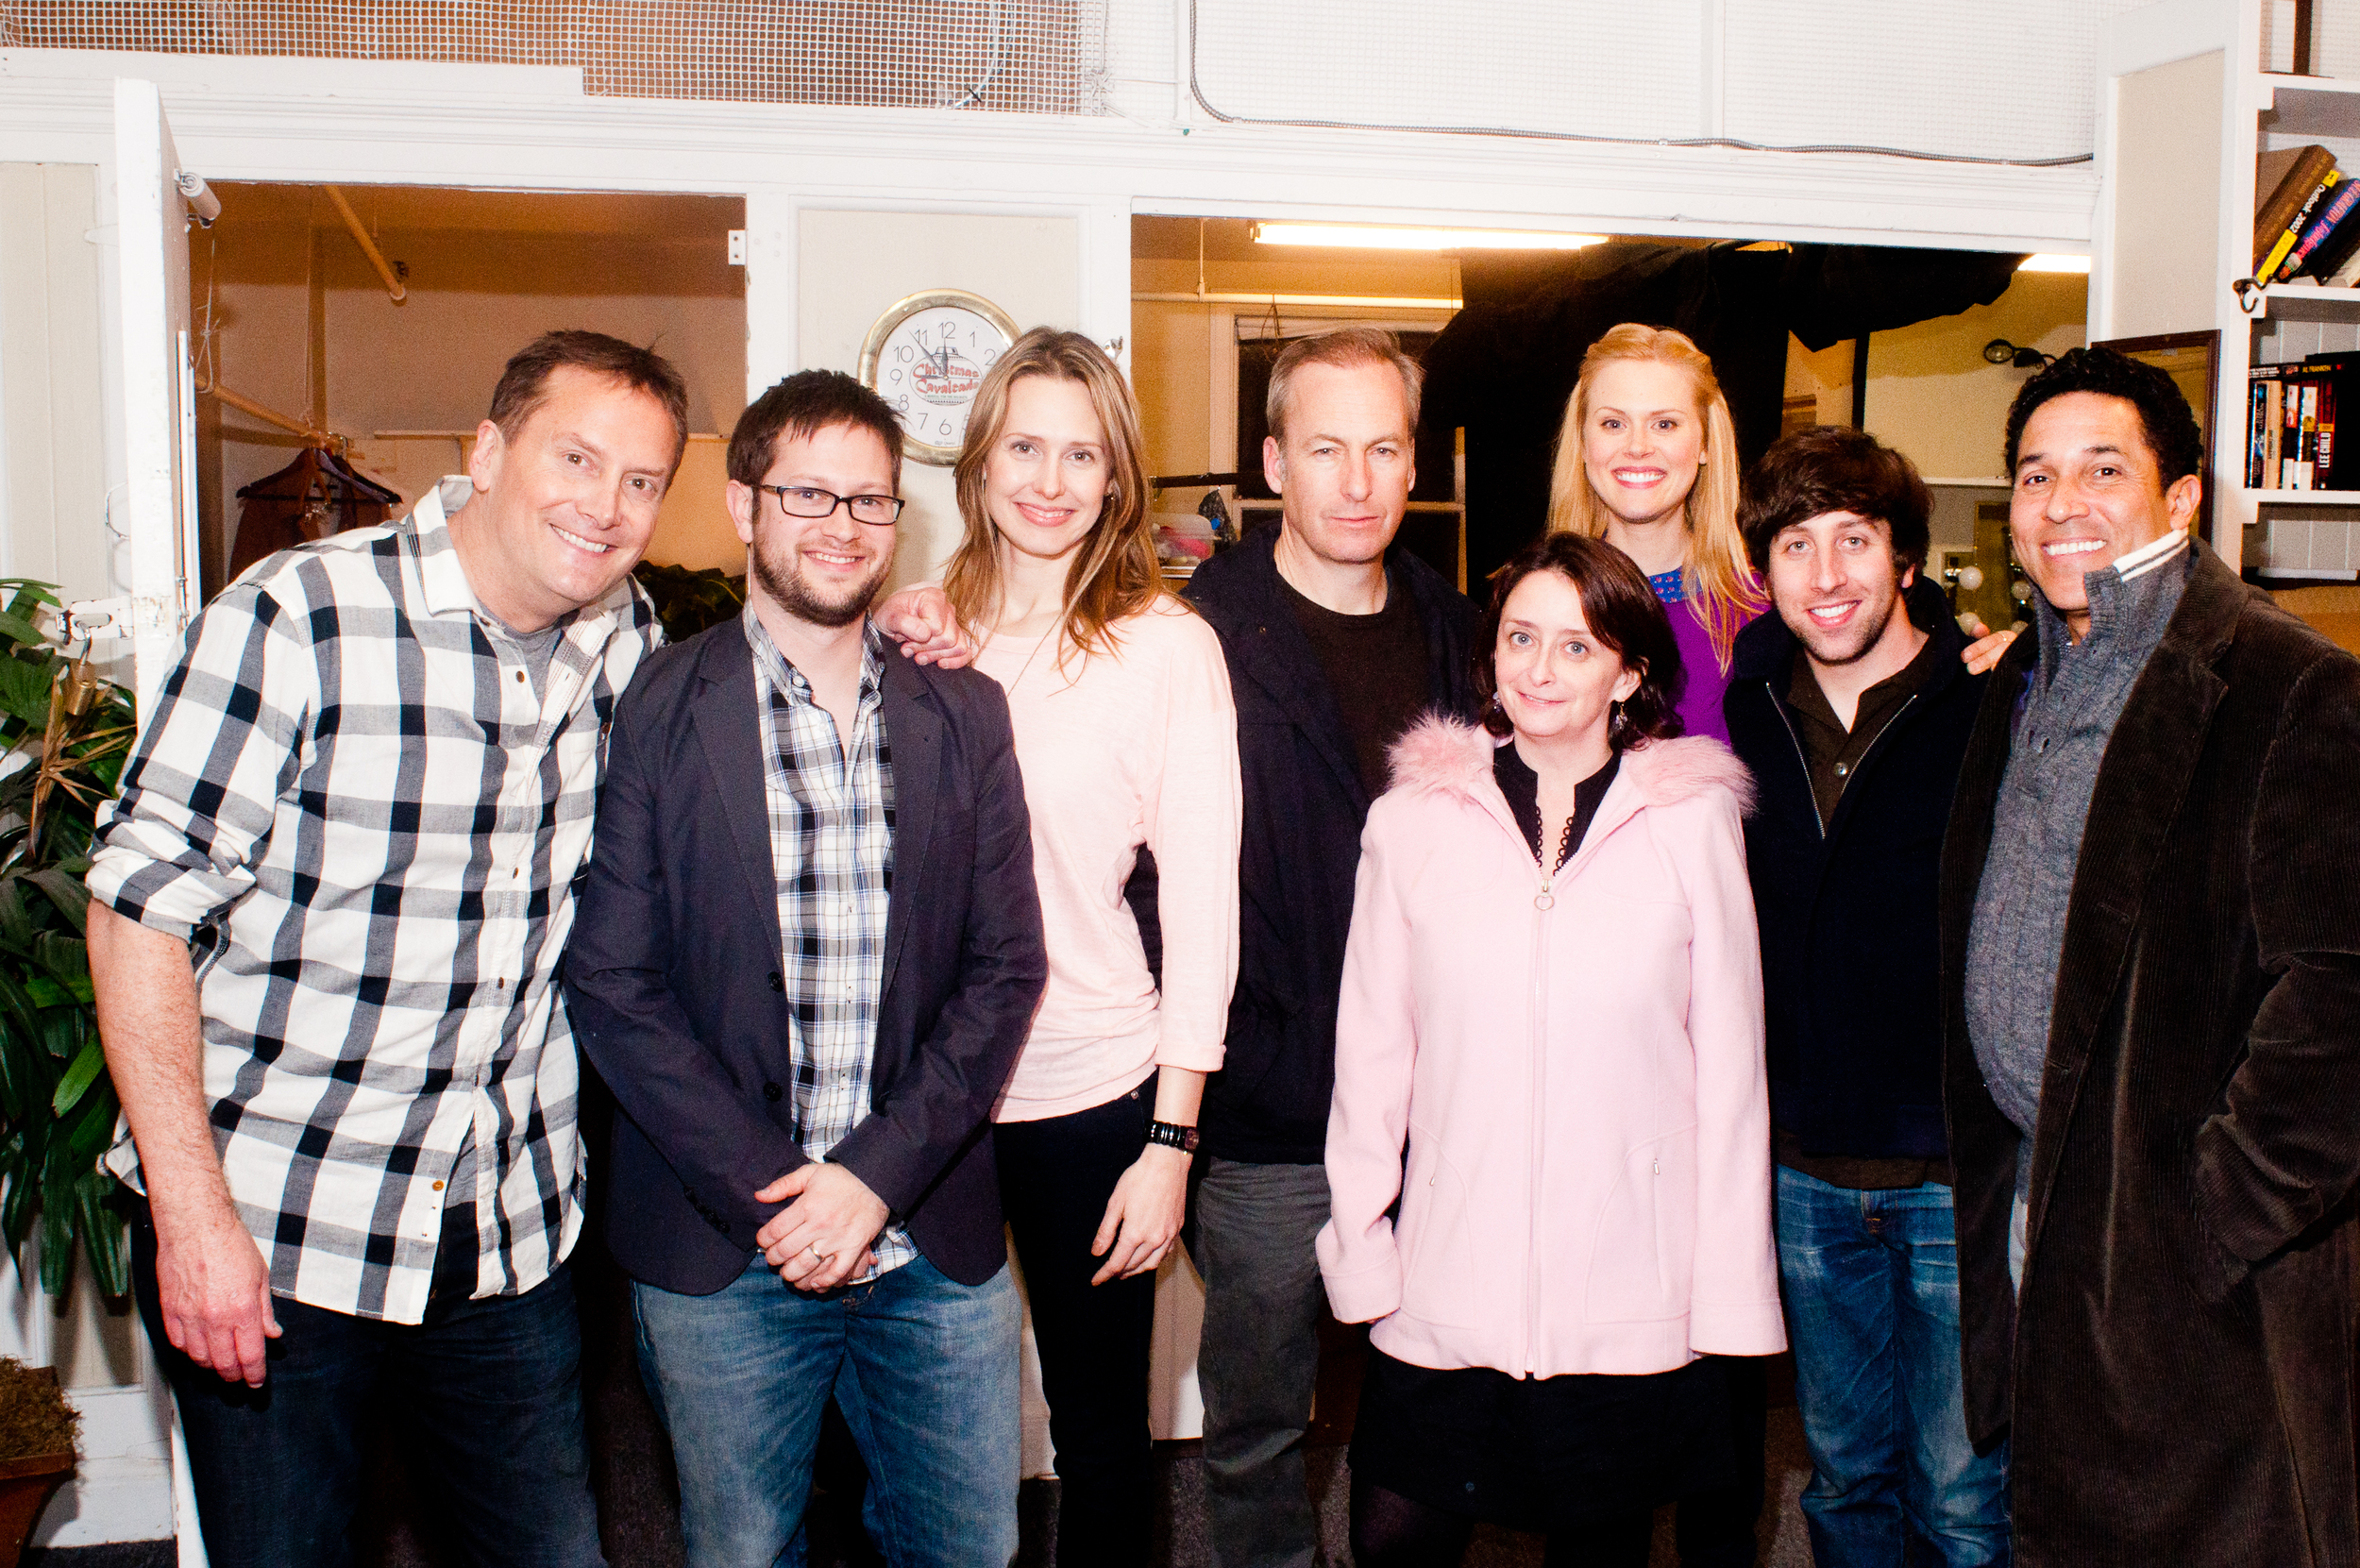 Theme Park with Michael Hitchcock, Cole Stratton, Jessica Makinson, Bob Odenkirk, Rachel Dratch, Janet Varney, Simon Helberg and Oscar Nunez at SF Sketchfest